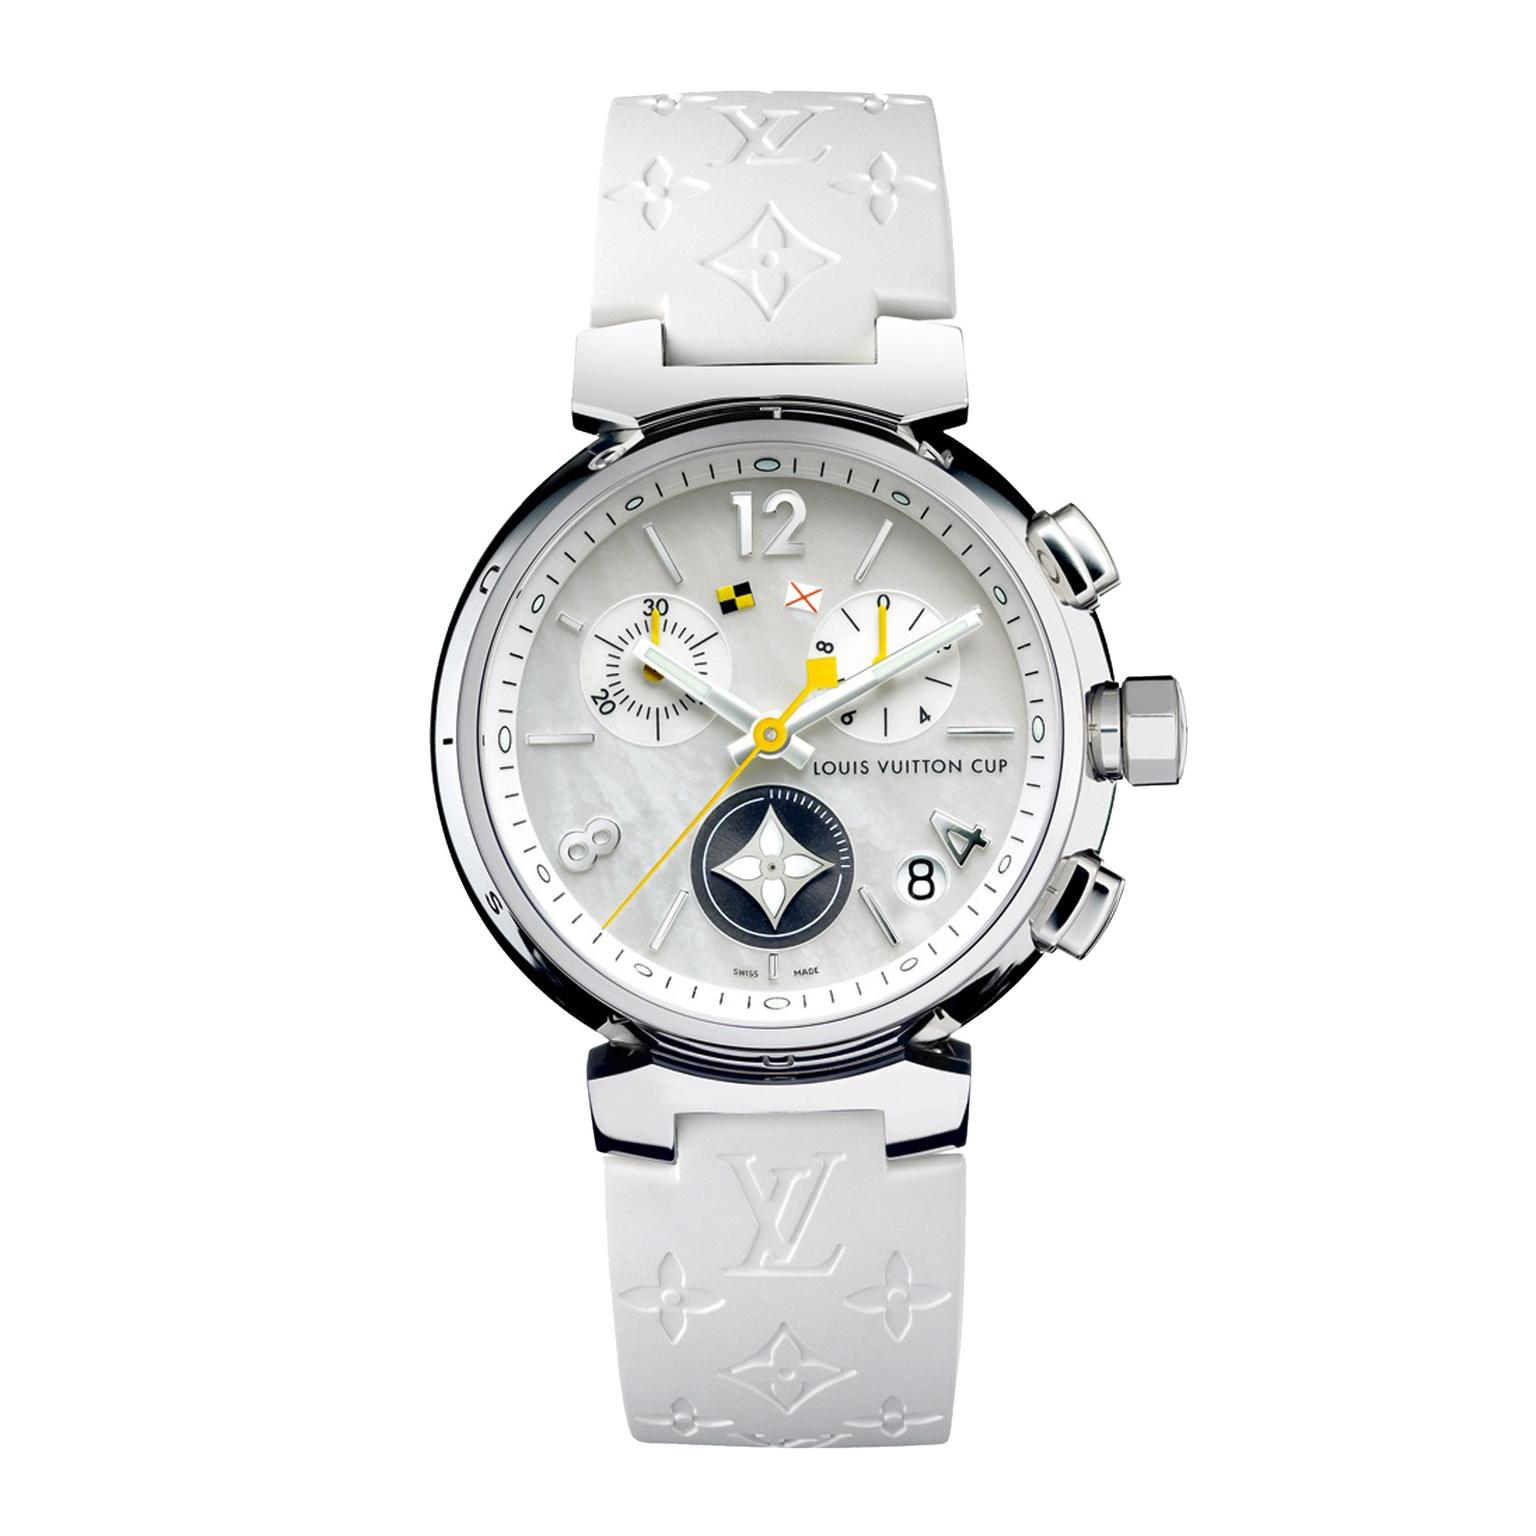 Louis-Vuitton-Tamour-lovely-Cup-Chrono-Zoom